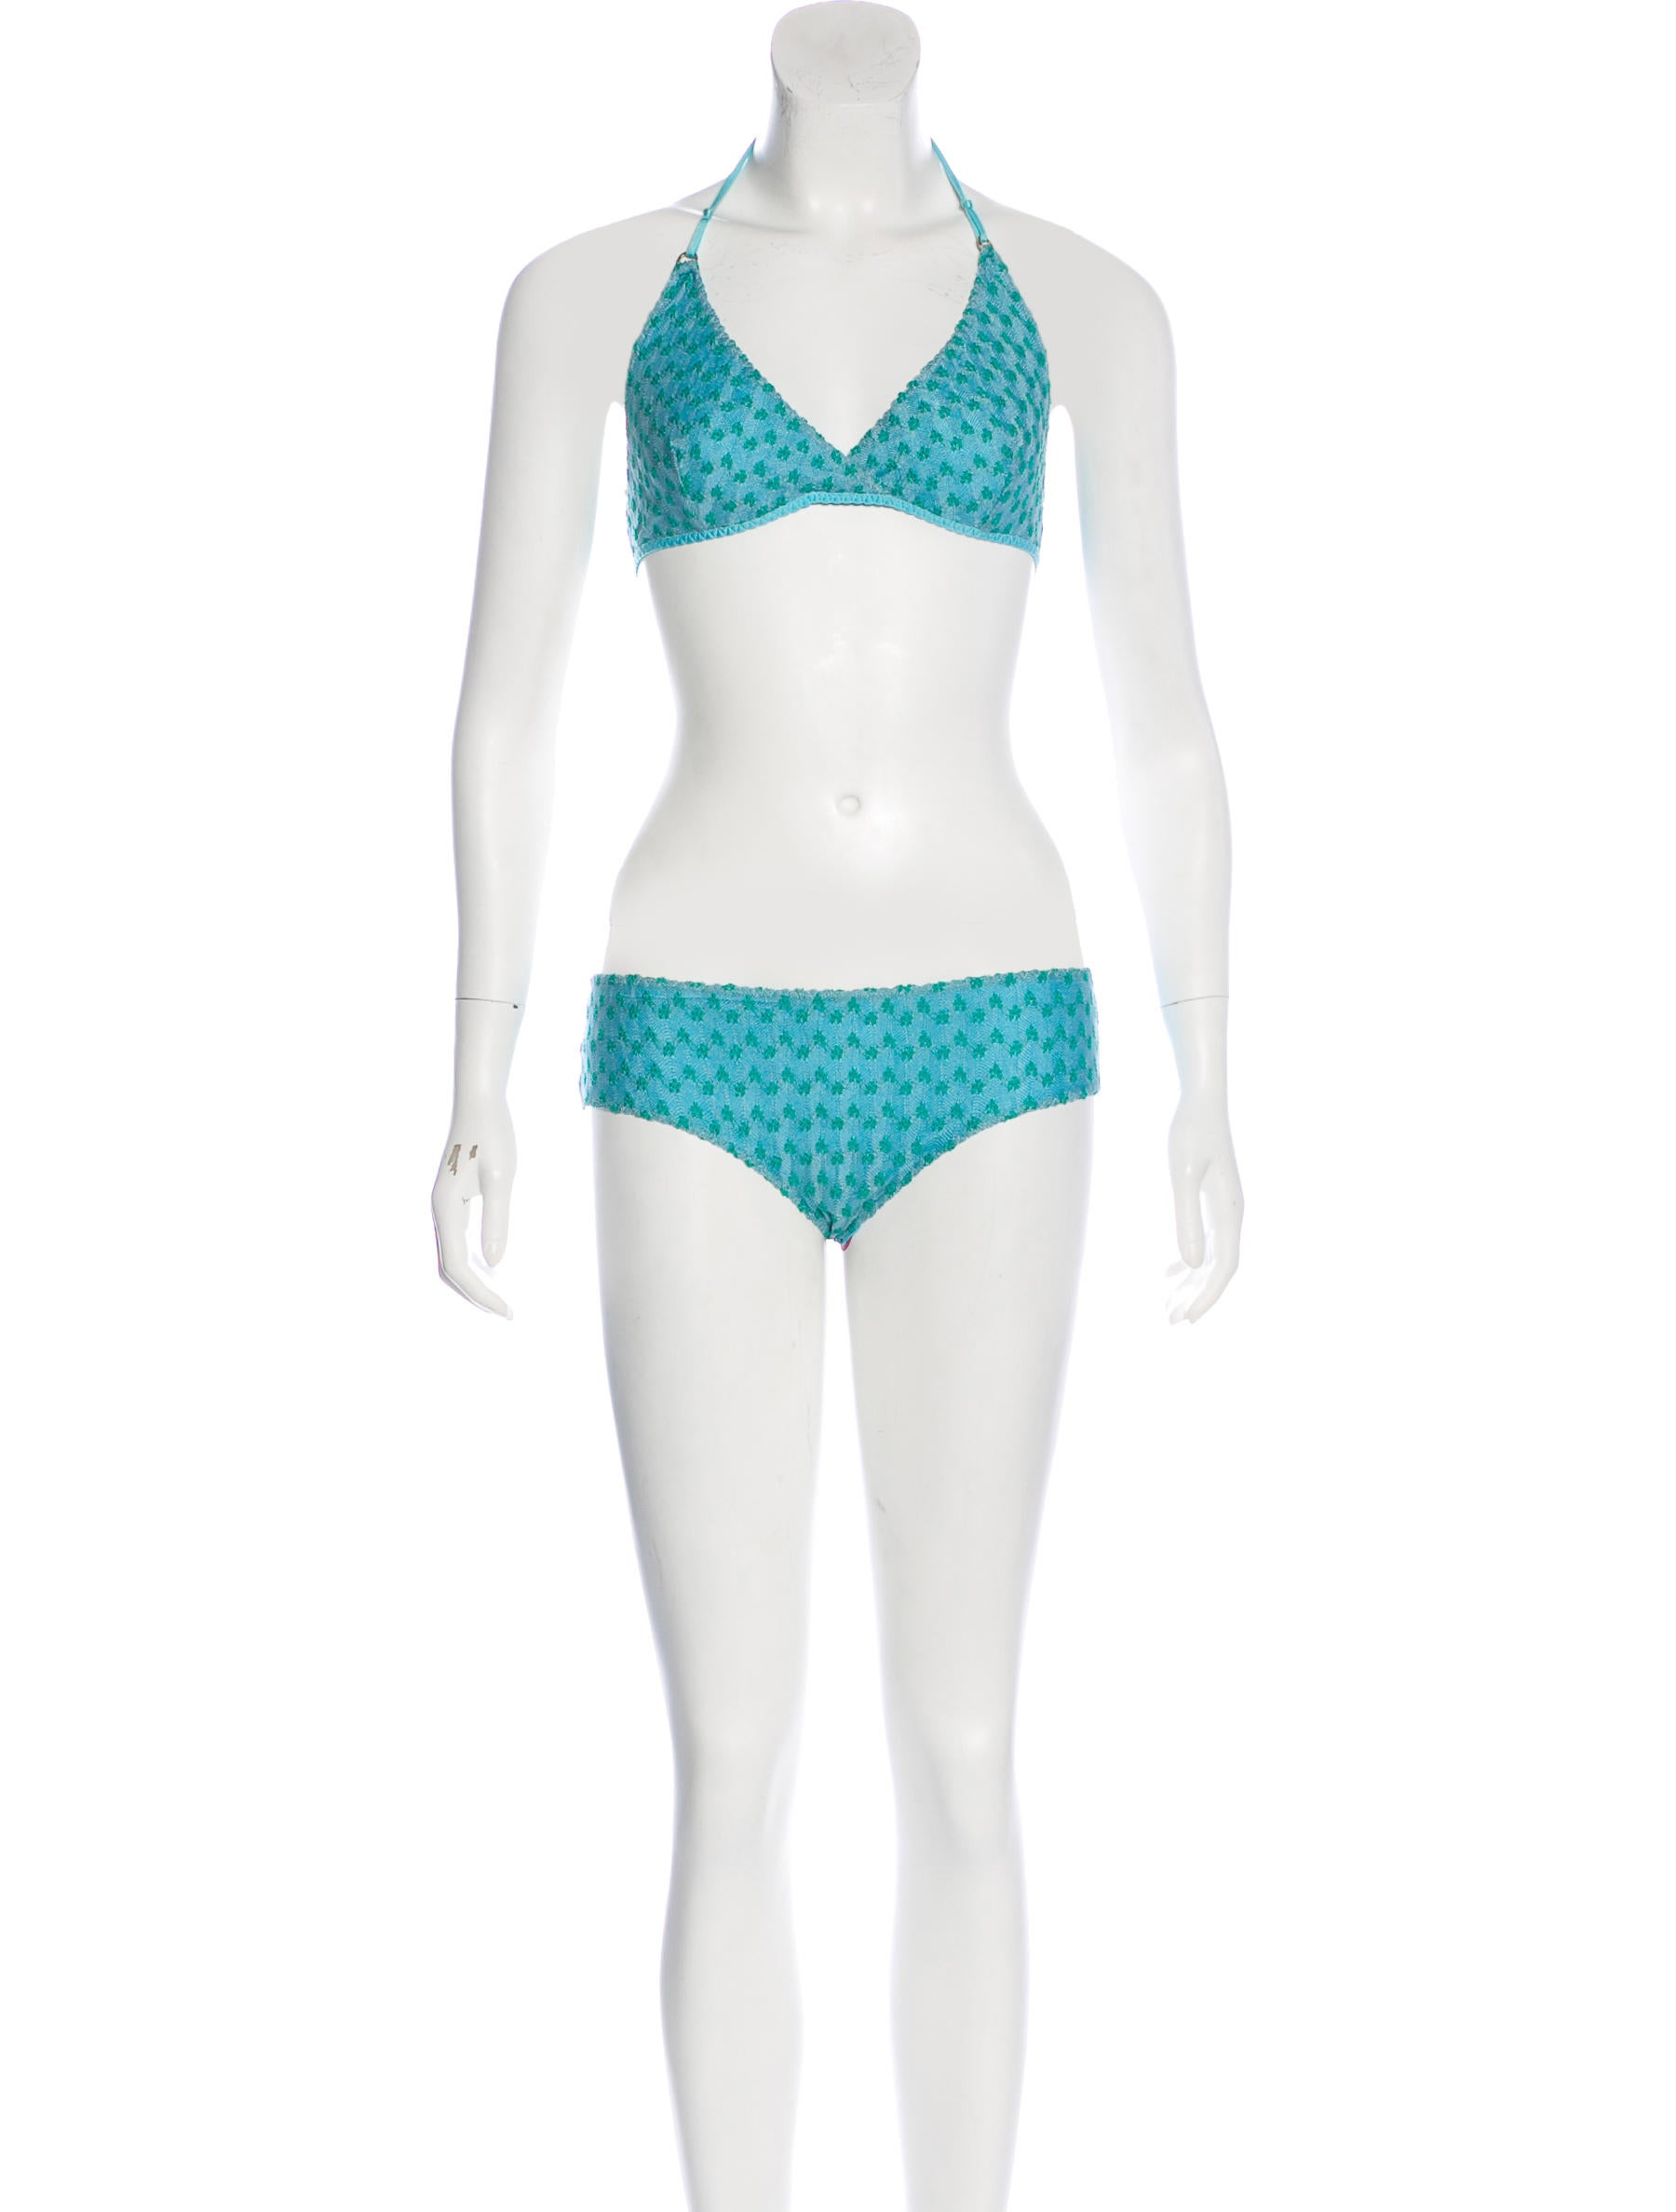 5a63304e4c Missoni Mare Pointelle Two-Piece Swimsuit w/ Tags - Clothing ...